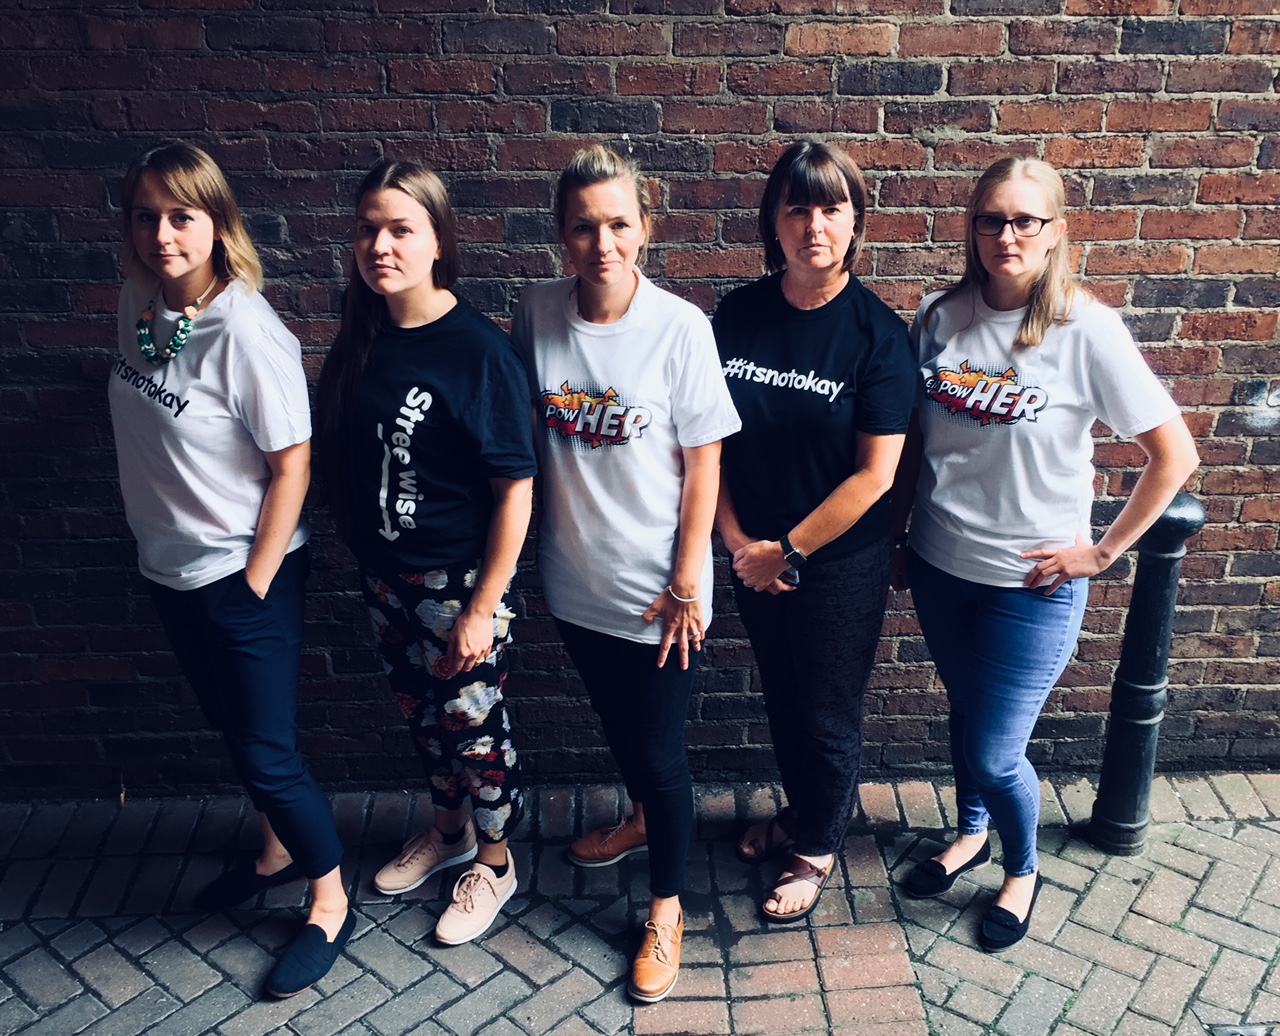 #ITSNOTOKAY LAUNCHES IN NEWCASTLE AFTER SHOCKING SURVEY REVEALED 80 PERCENT OF YOUNG PEOPLE FELT UNSAFE IN THE REGION